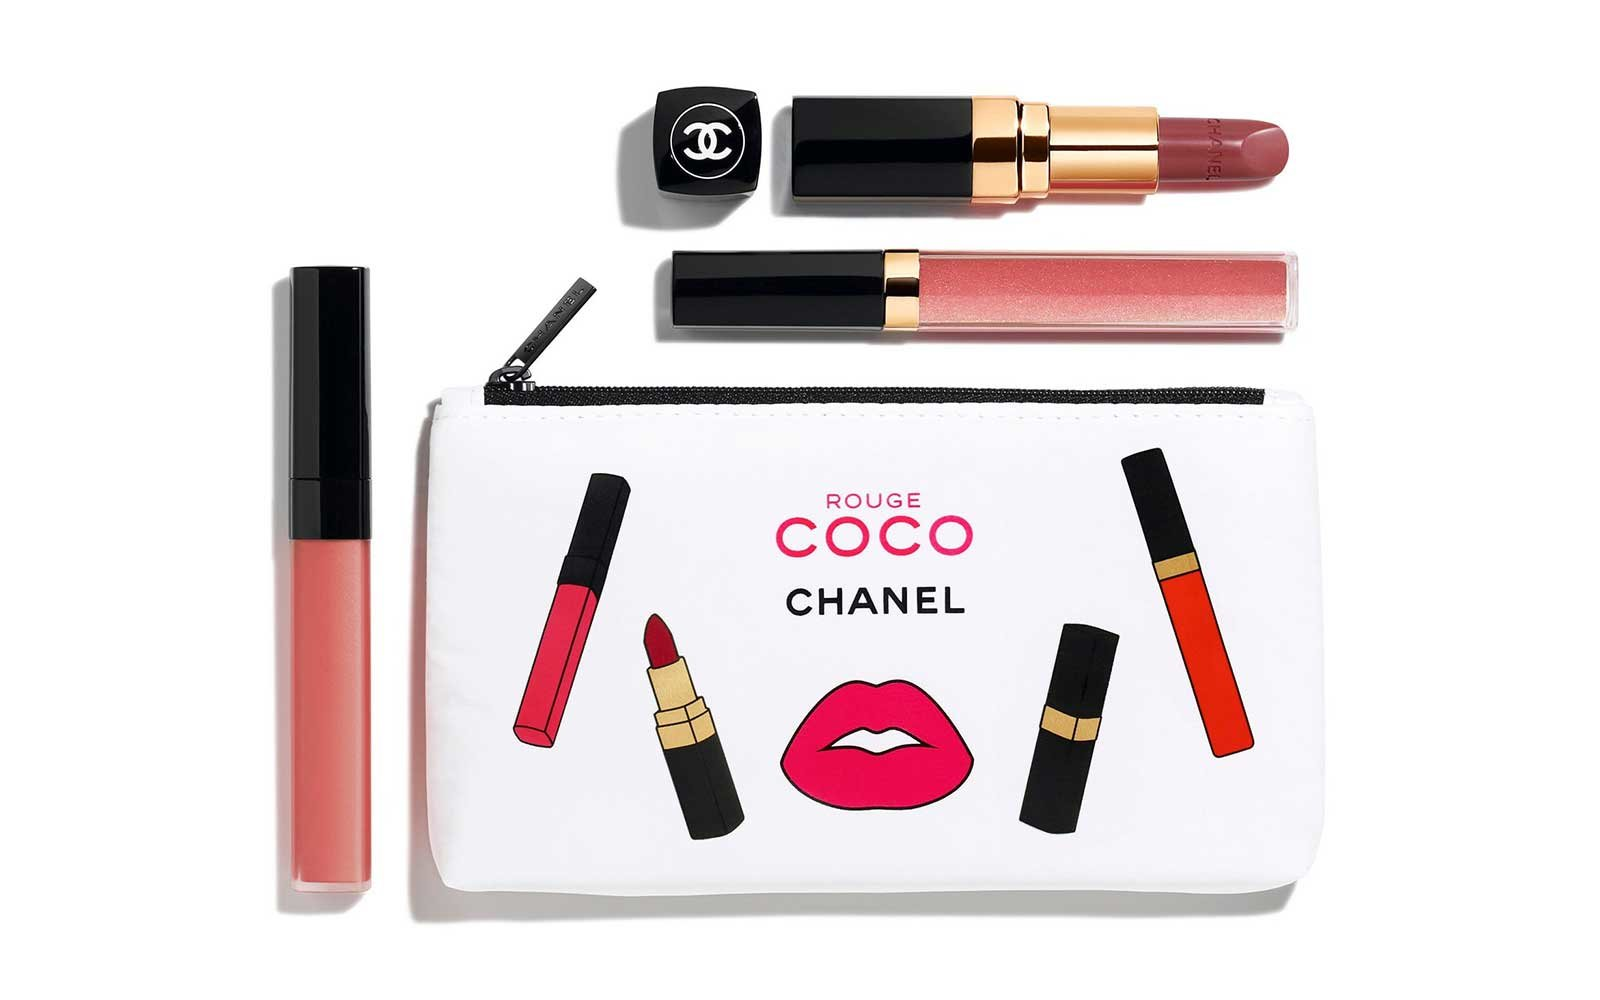 Chanel lip gloss and lipstick set